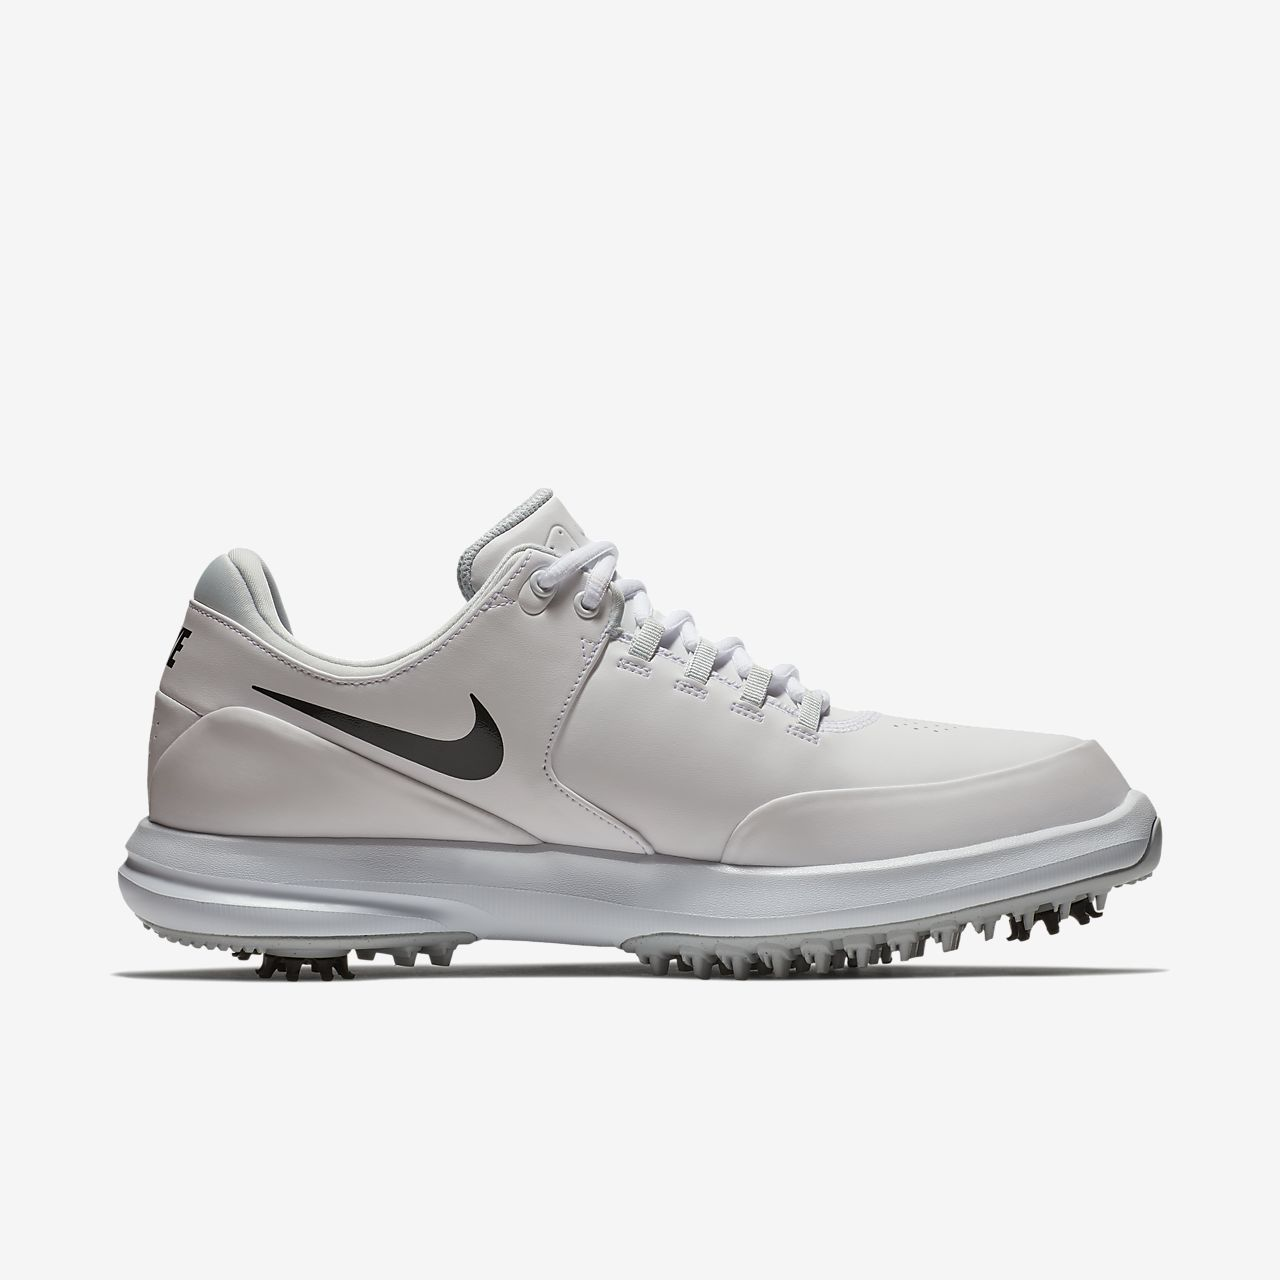 Nike Golf Air Zoom Accurate dou2UohyDh